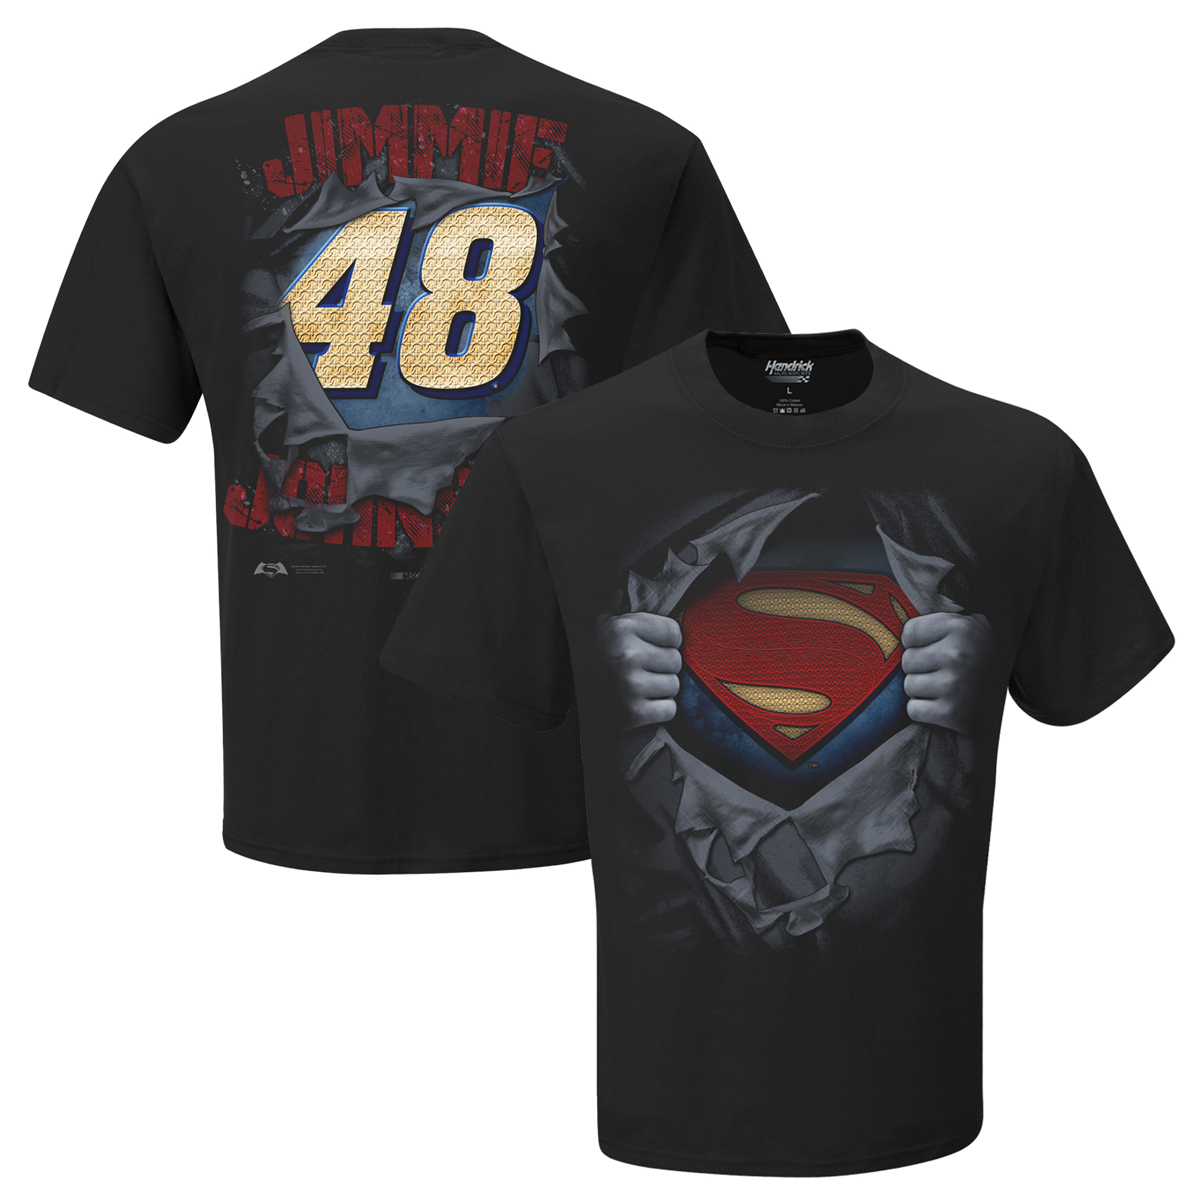 Jimmie johnson 48 superman man of steel t shirt shop for Man of steel t shirt online